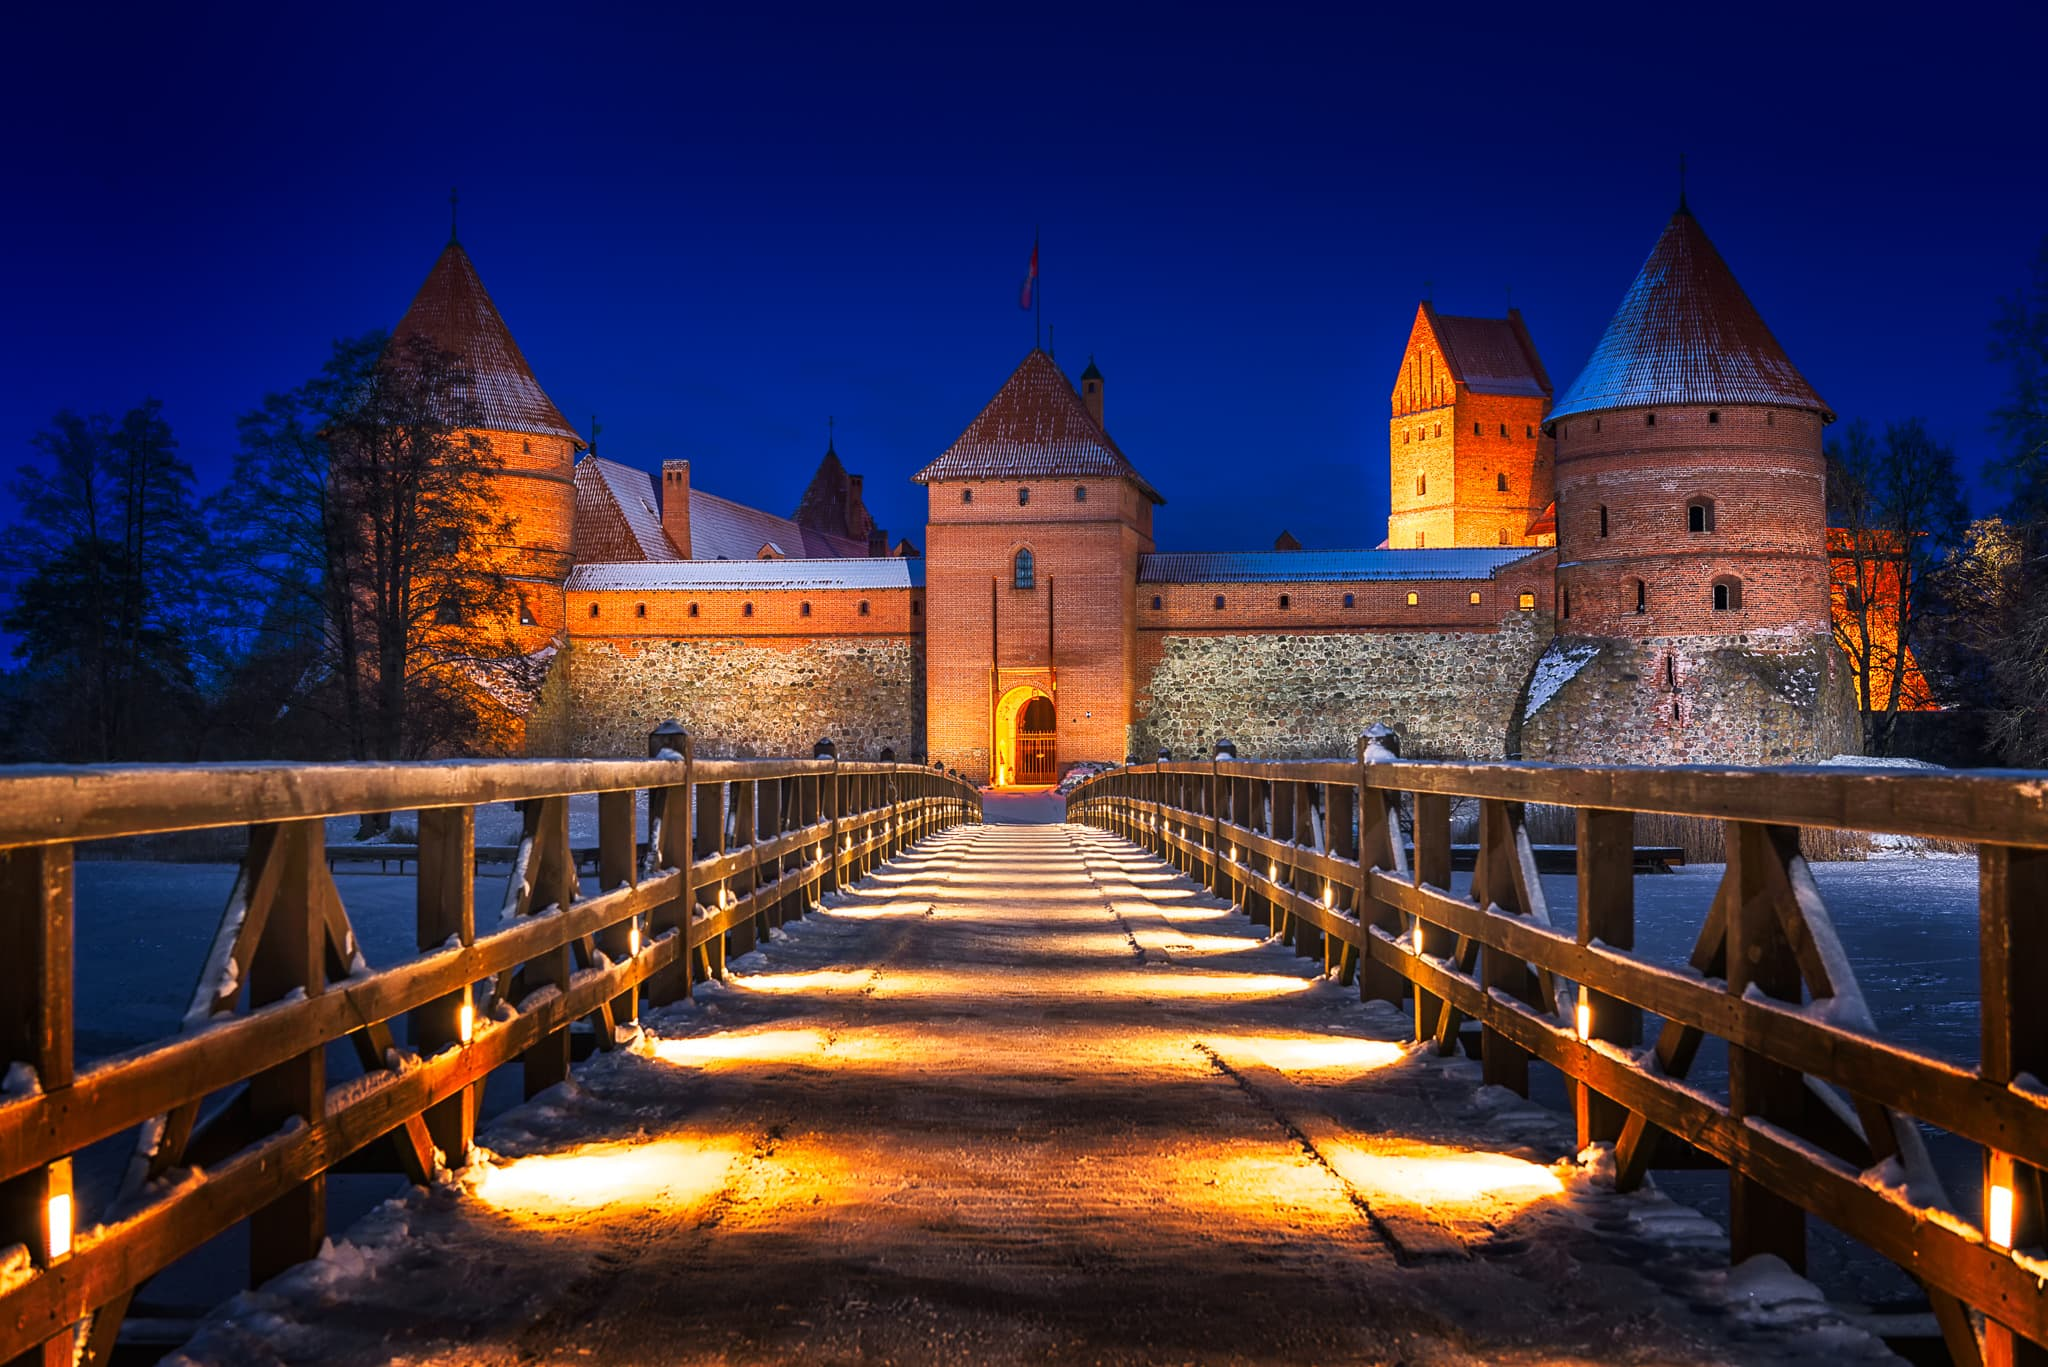 The Trakai Island Castle in Lithuania, which is close to the capital Vilnius during a winter evening.